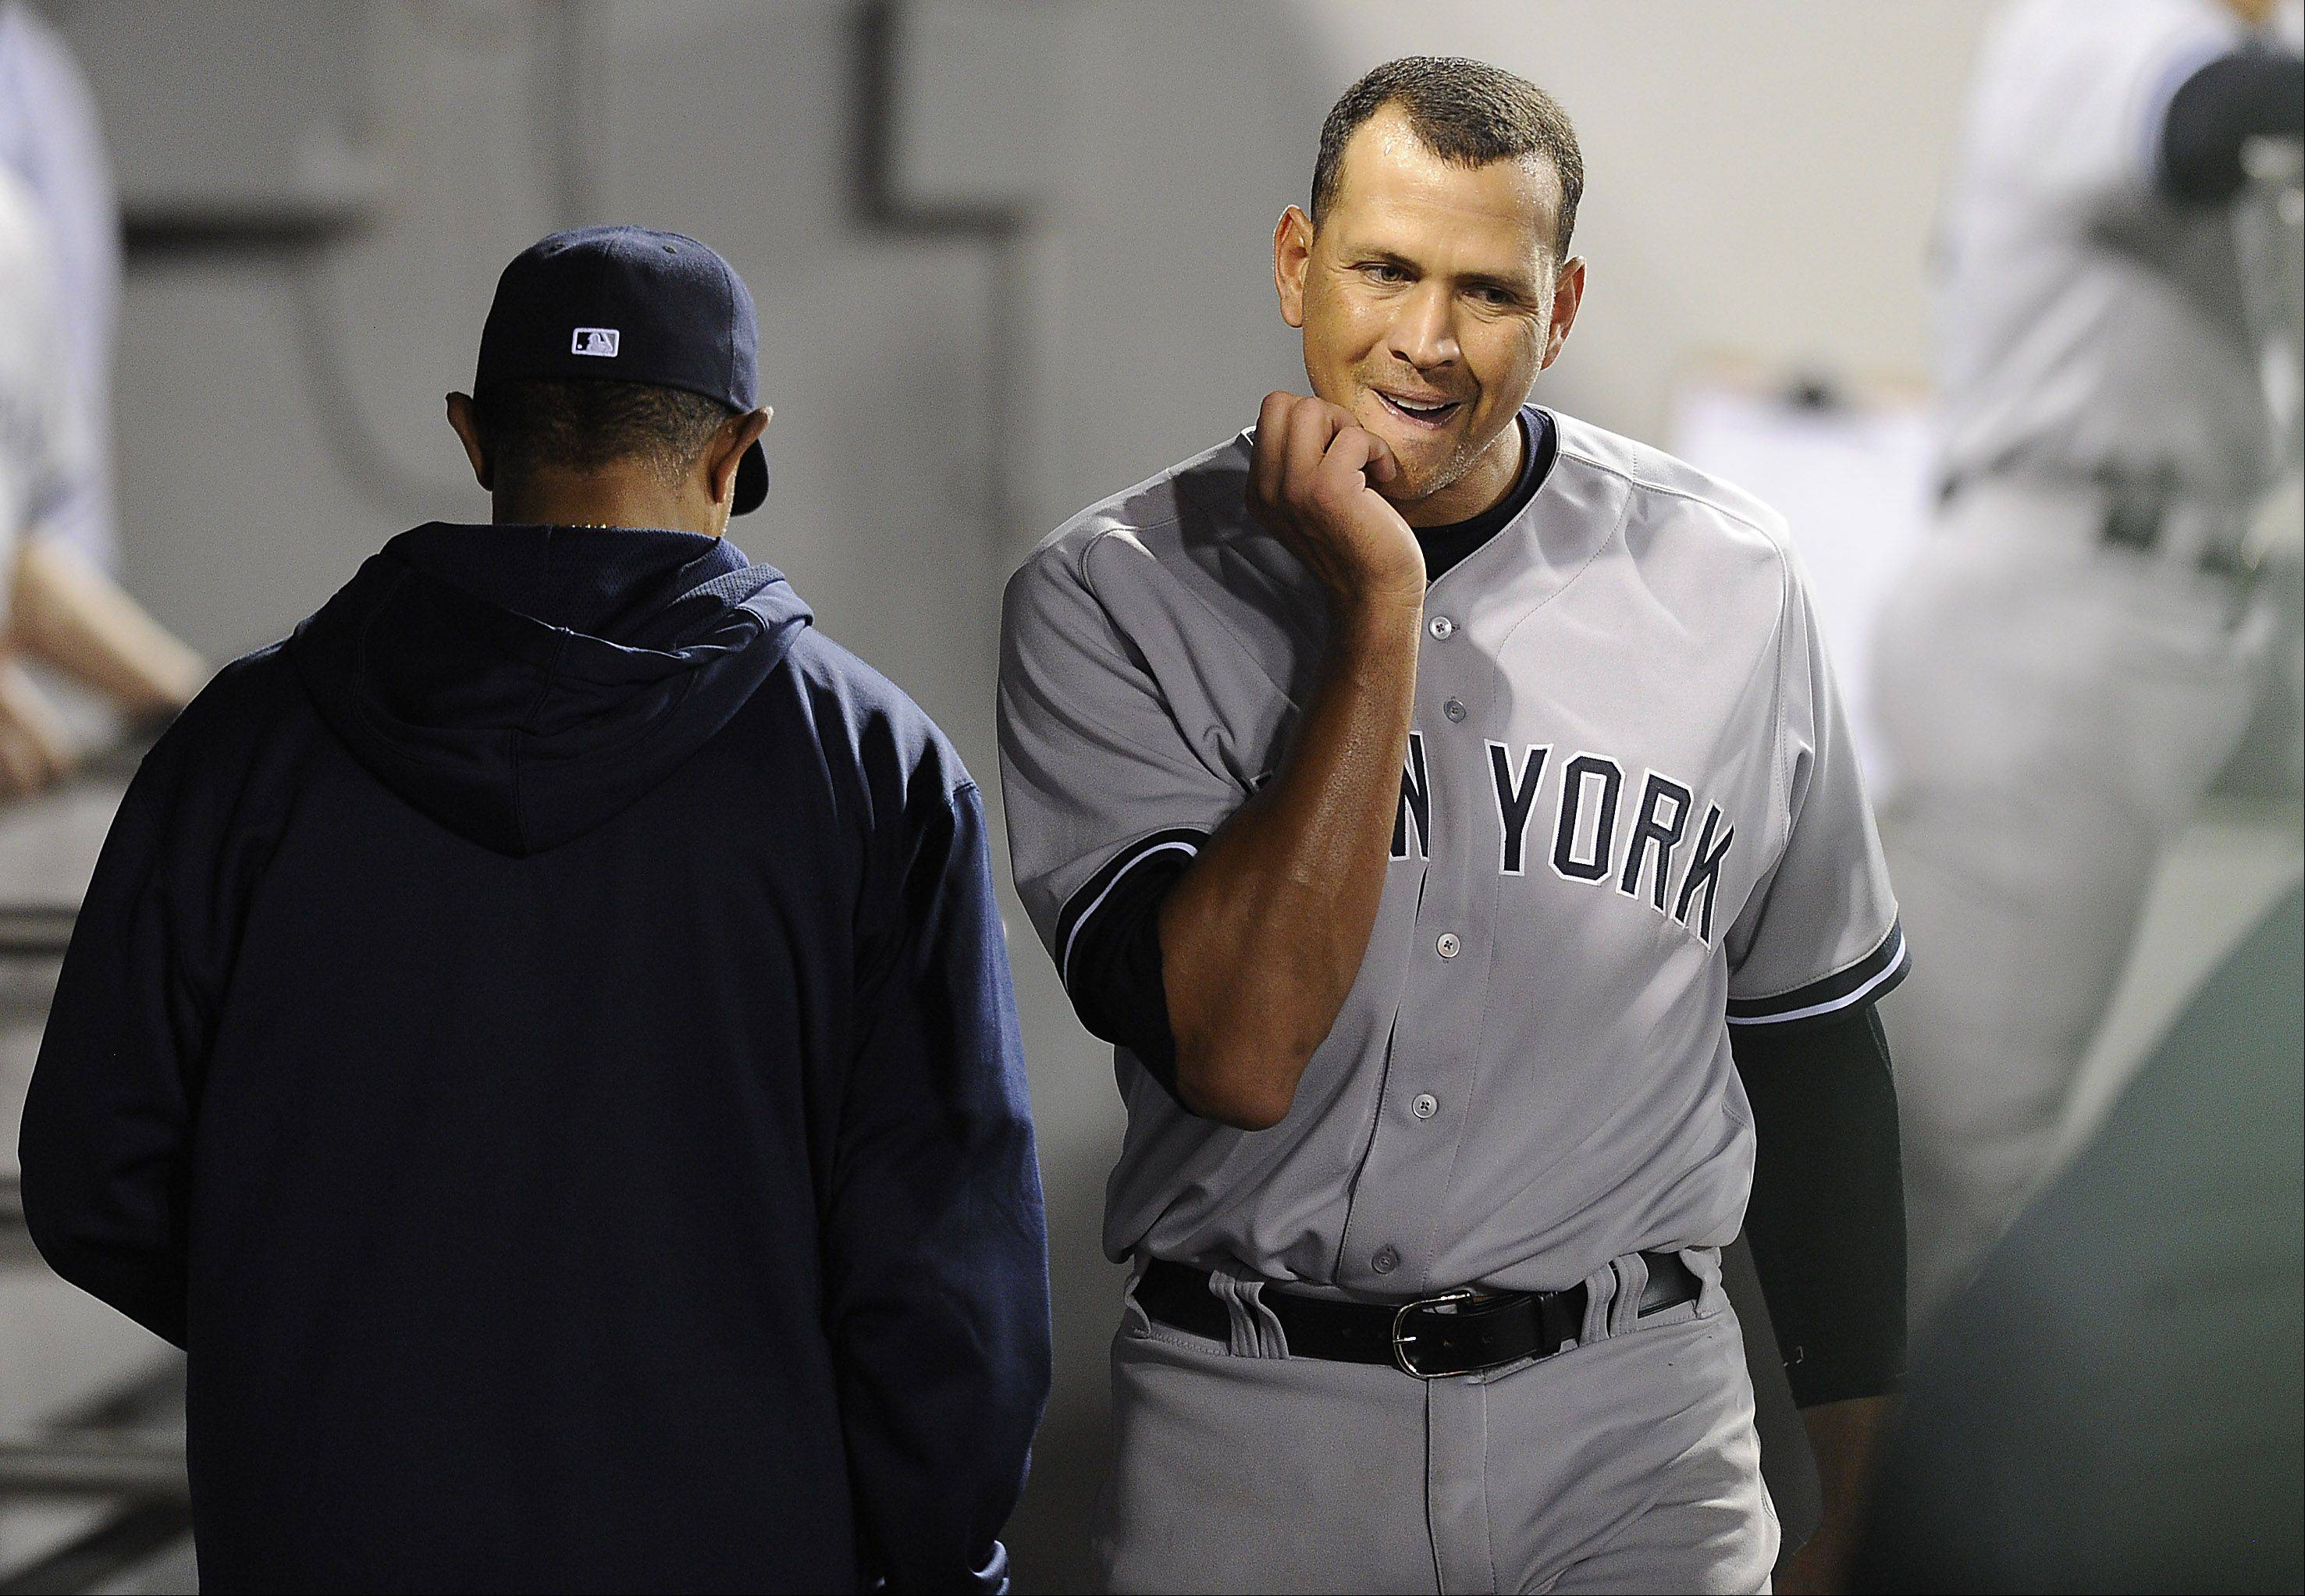 New York Yankees Alex Rodriguez in the dugout after striking out in the 8th inning.